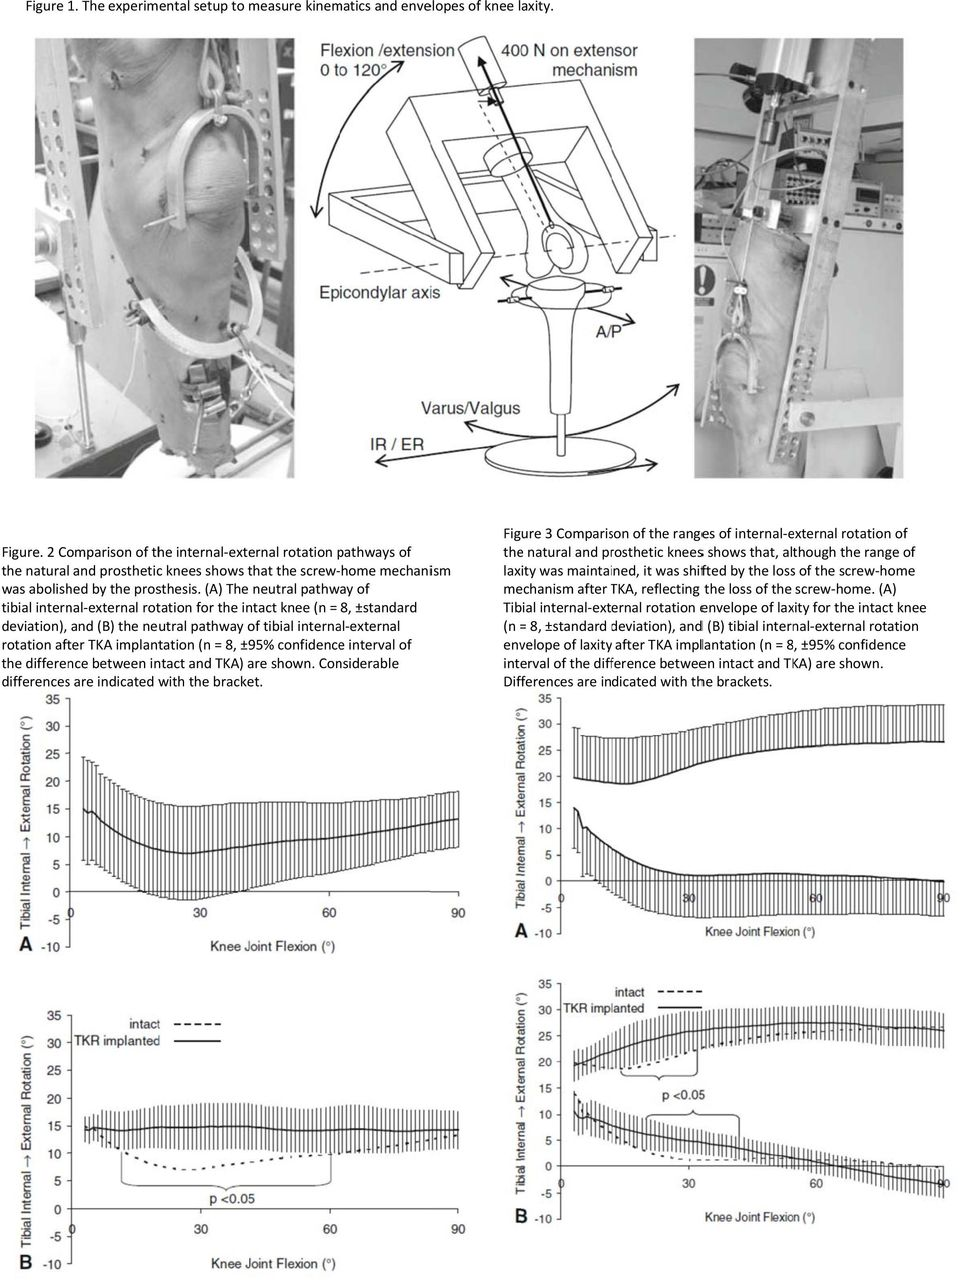 (A) The tibial internal-external rotation for the intact knee (n = 8, ±standard deviation), and (B) the neutral pathway of tibial internal-external rotation after TKA implantation (n = 8, ±95%